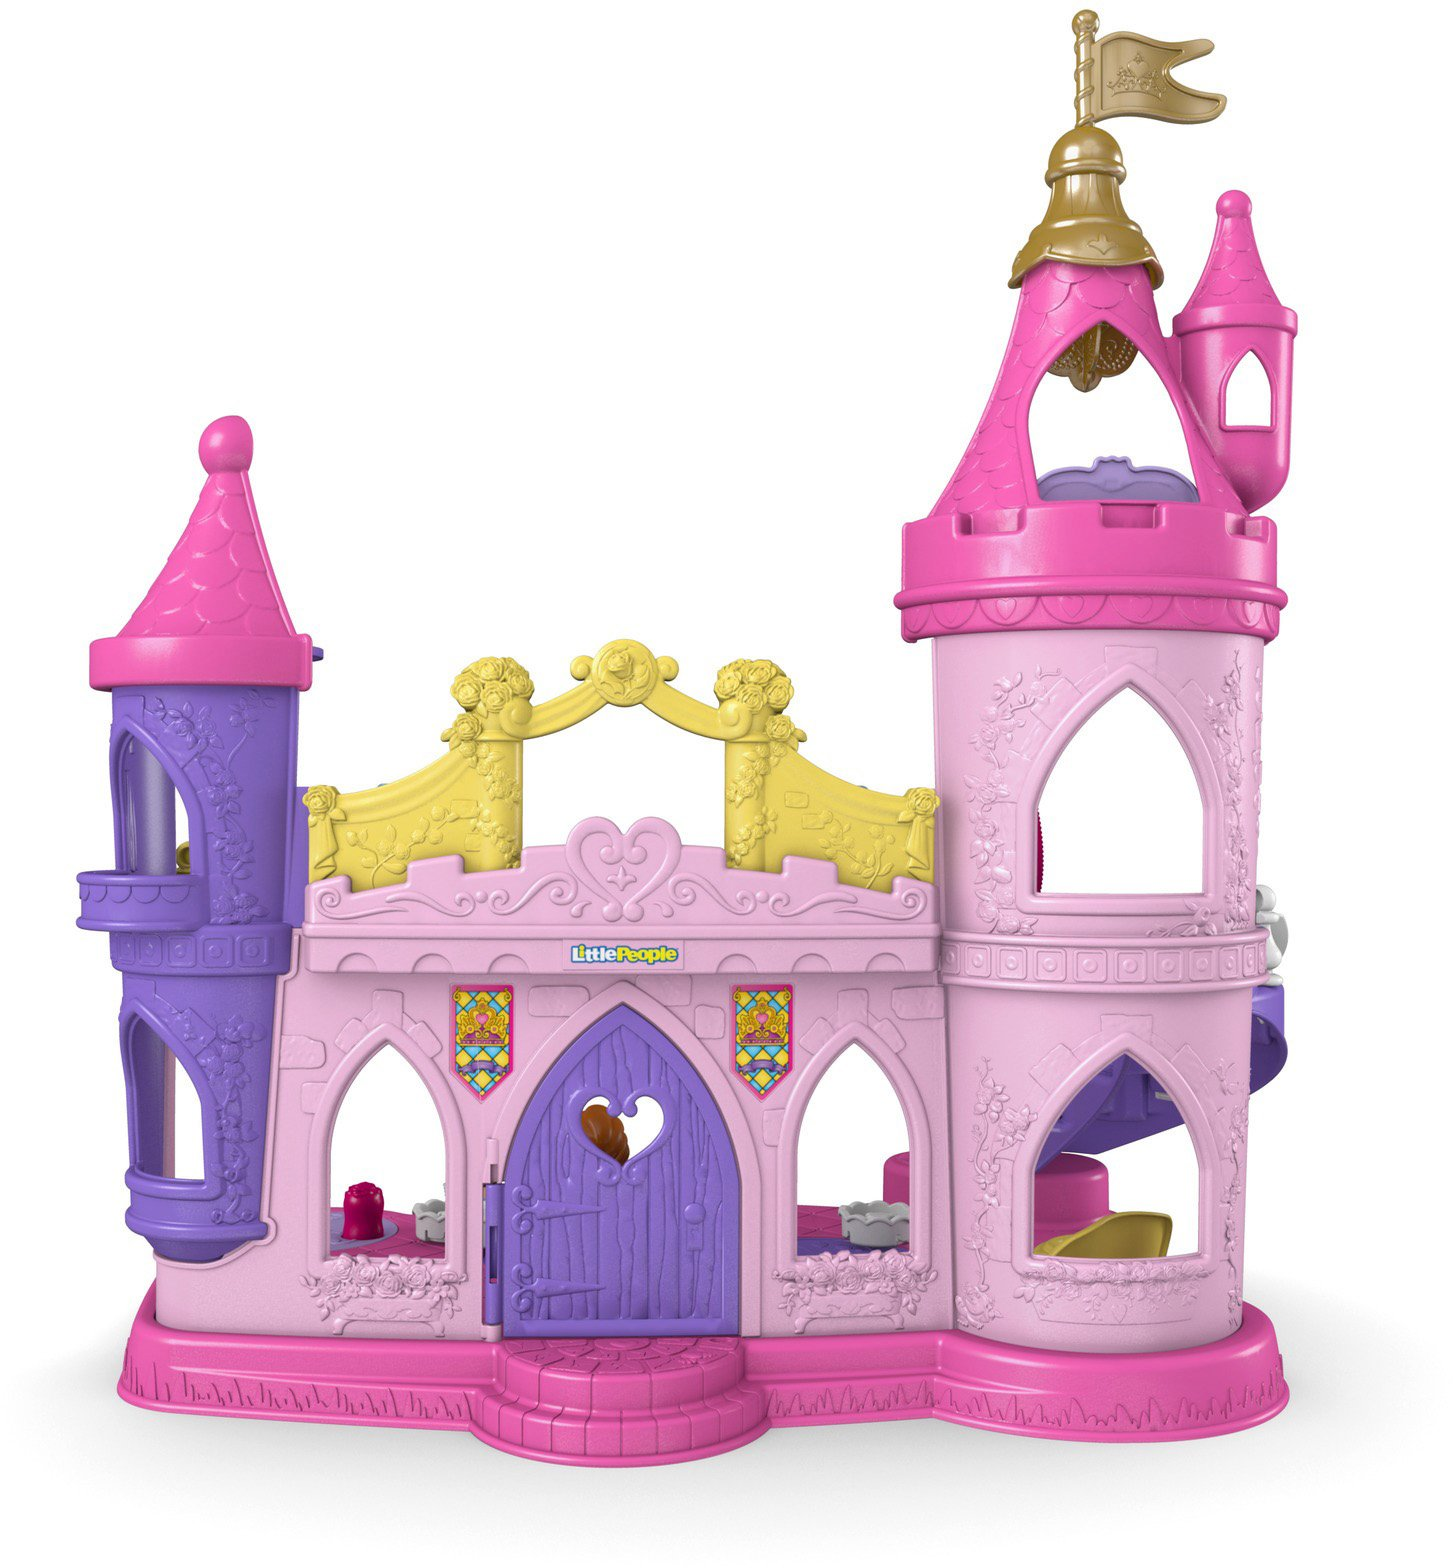 Fisher-Price Little People Disney Princess, Musical Dancing Palace by Fisher-Price (Image #7)